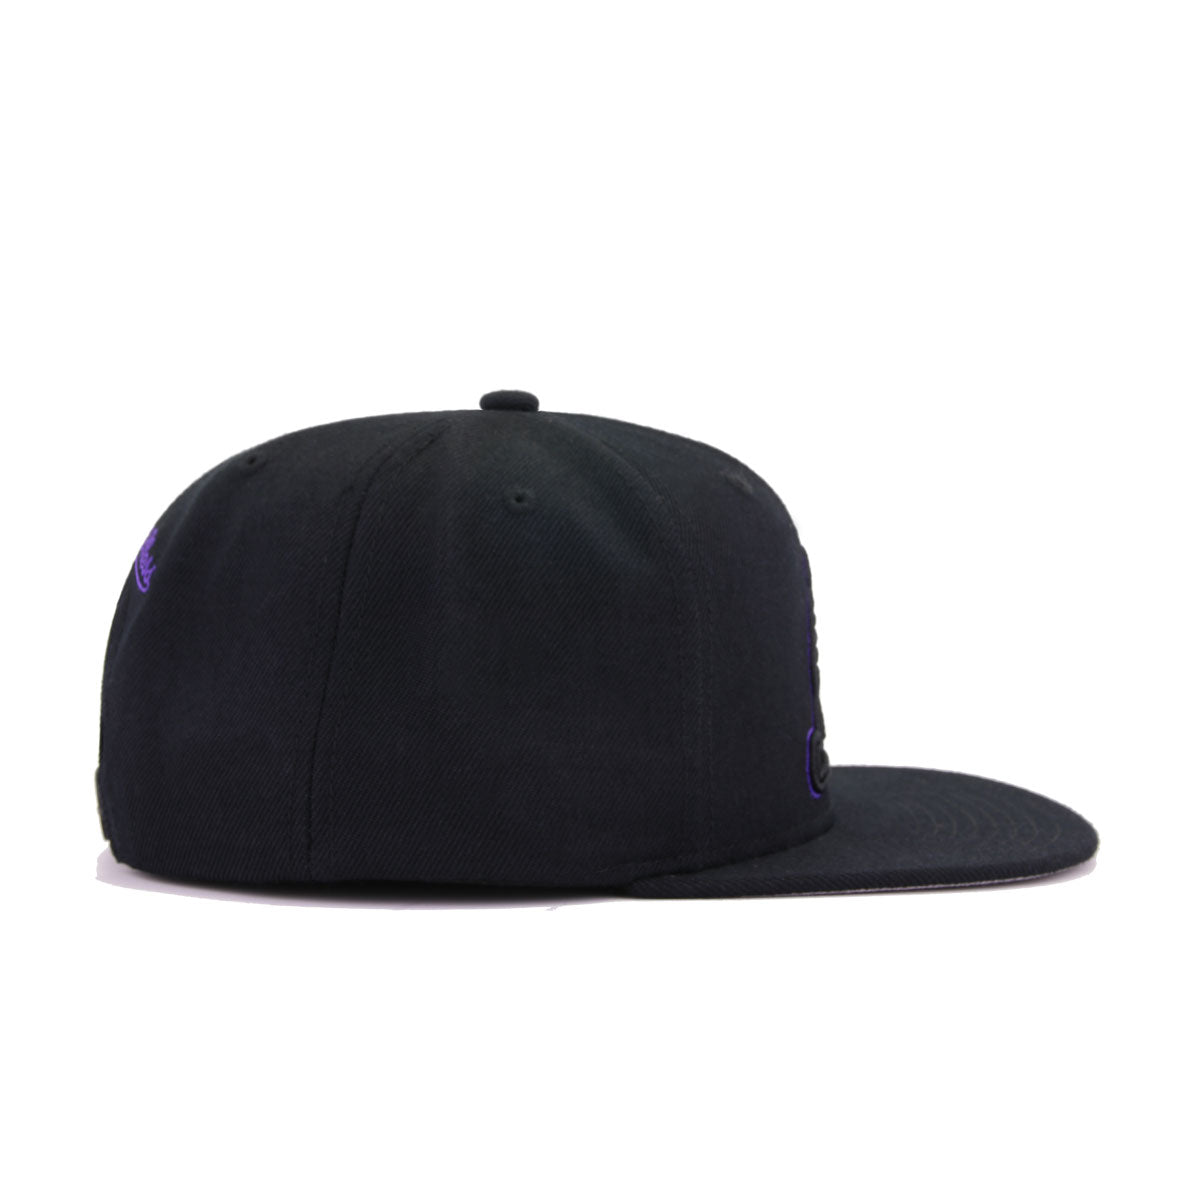 Los Angeles Lakers Black Alternate Mitchell and Ness Snapback